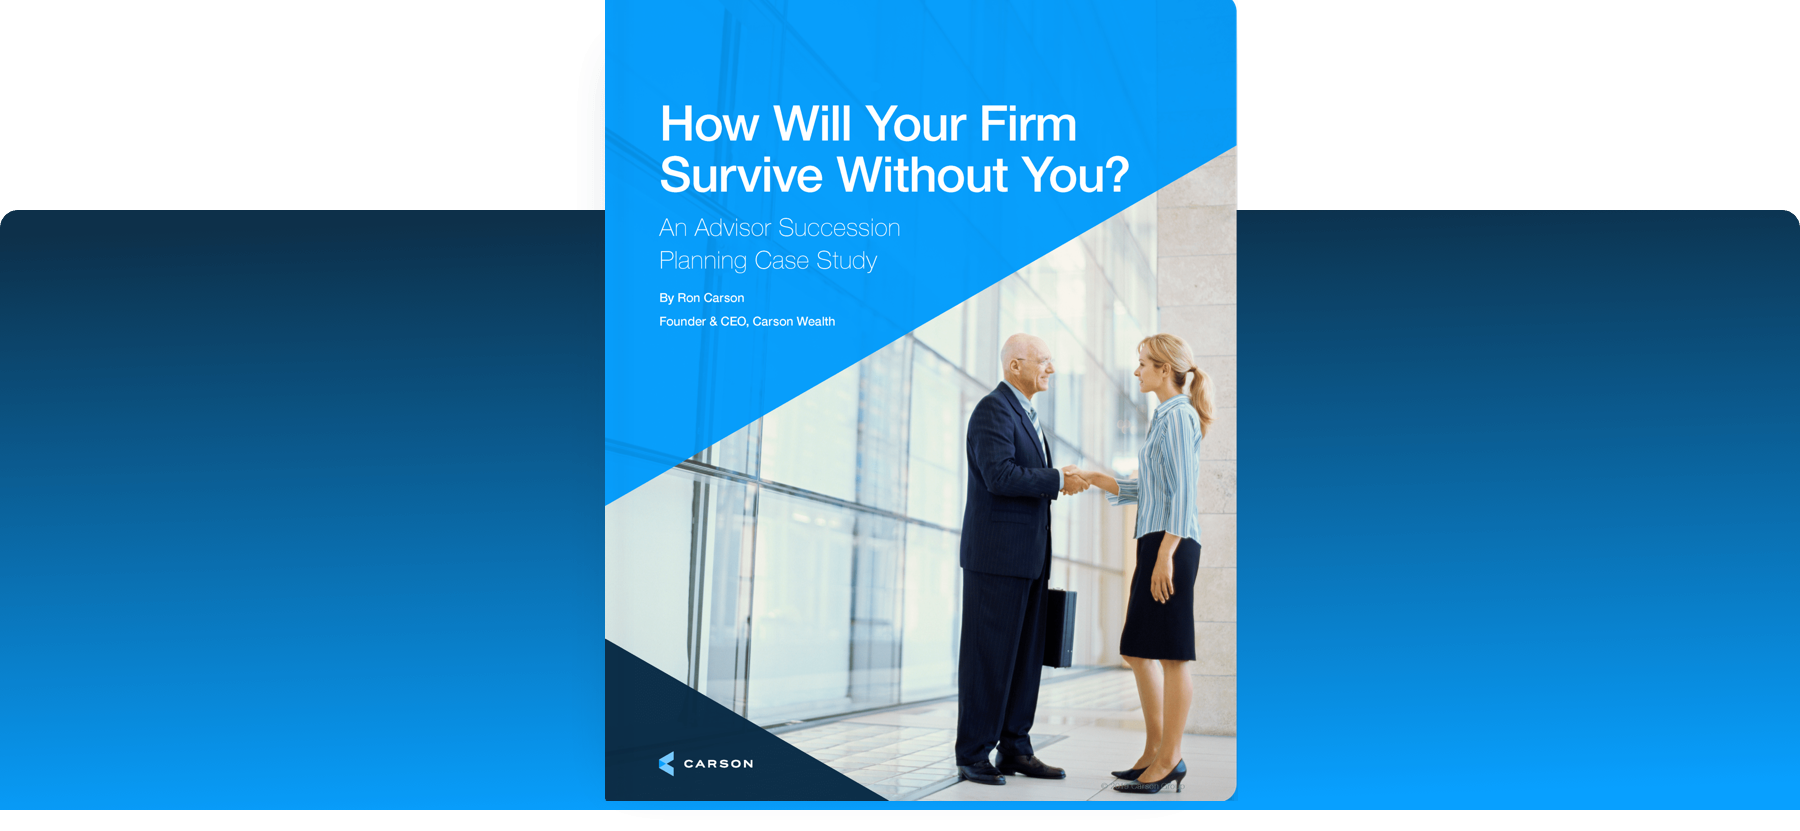 How Will Your Firm Survive Without You